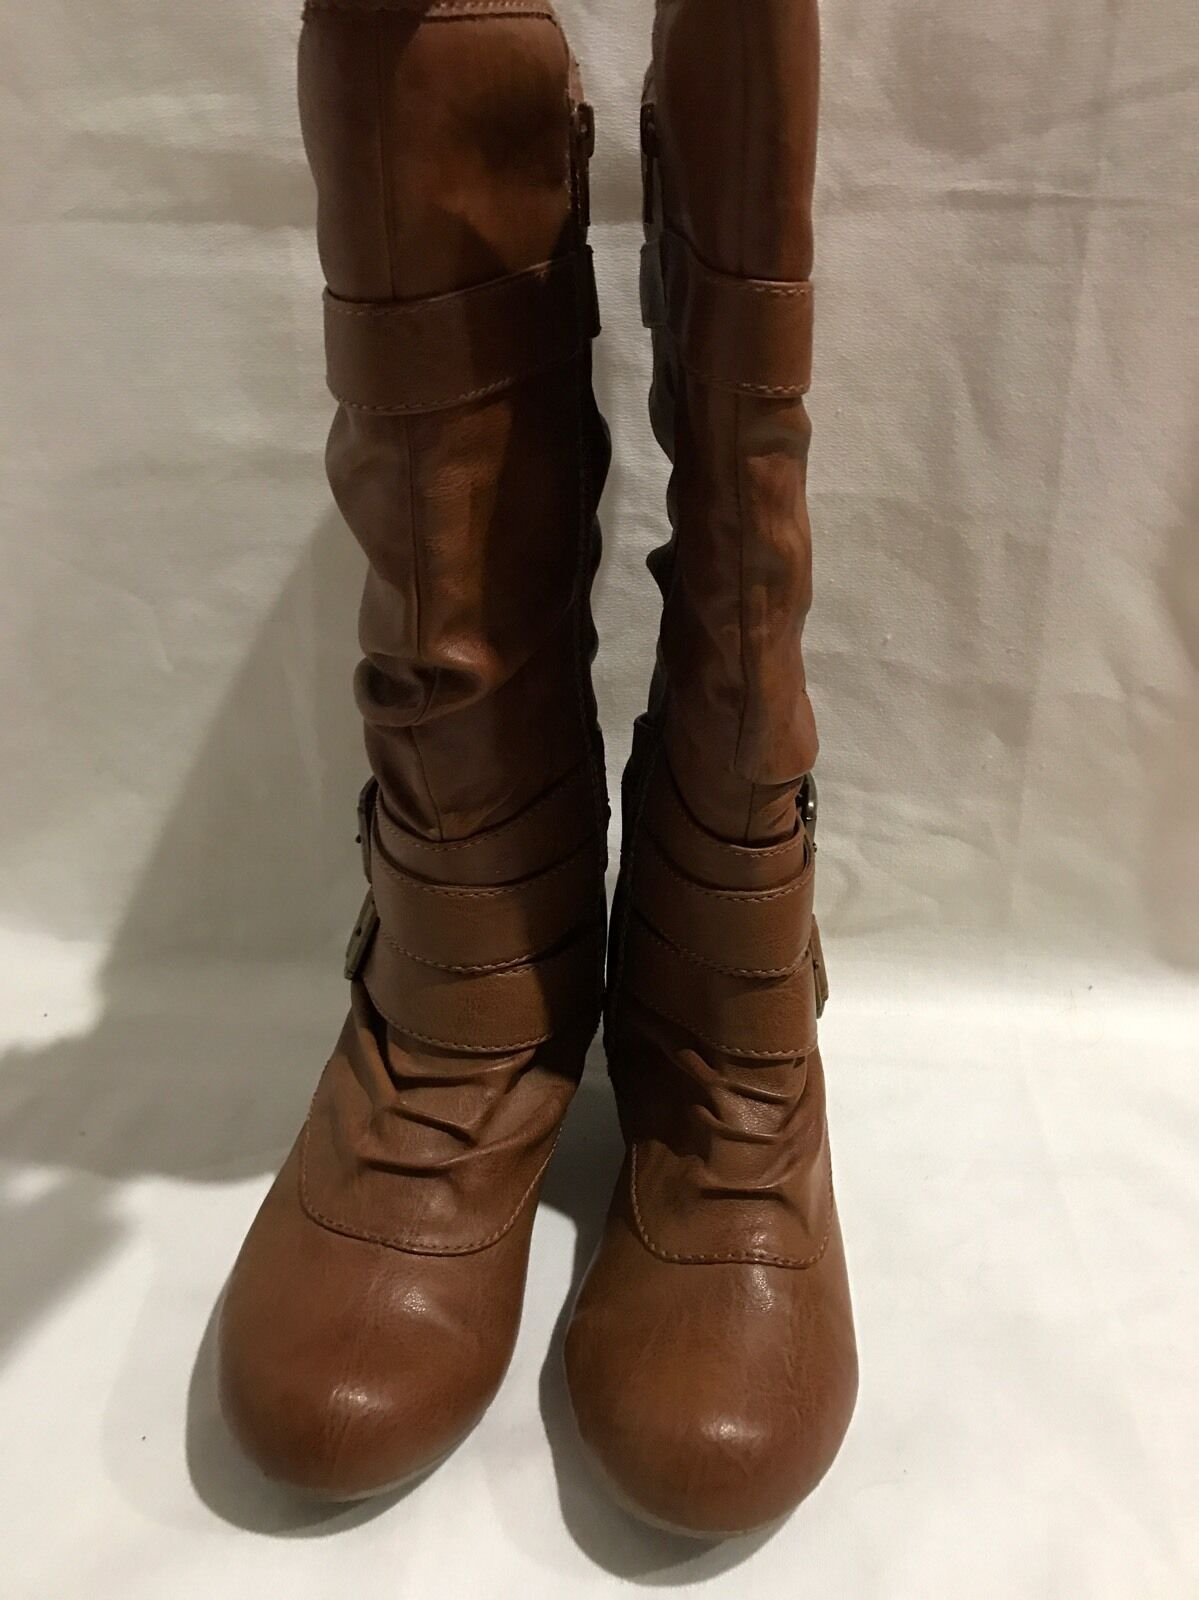 Tan Boots With Buckles Size 7